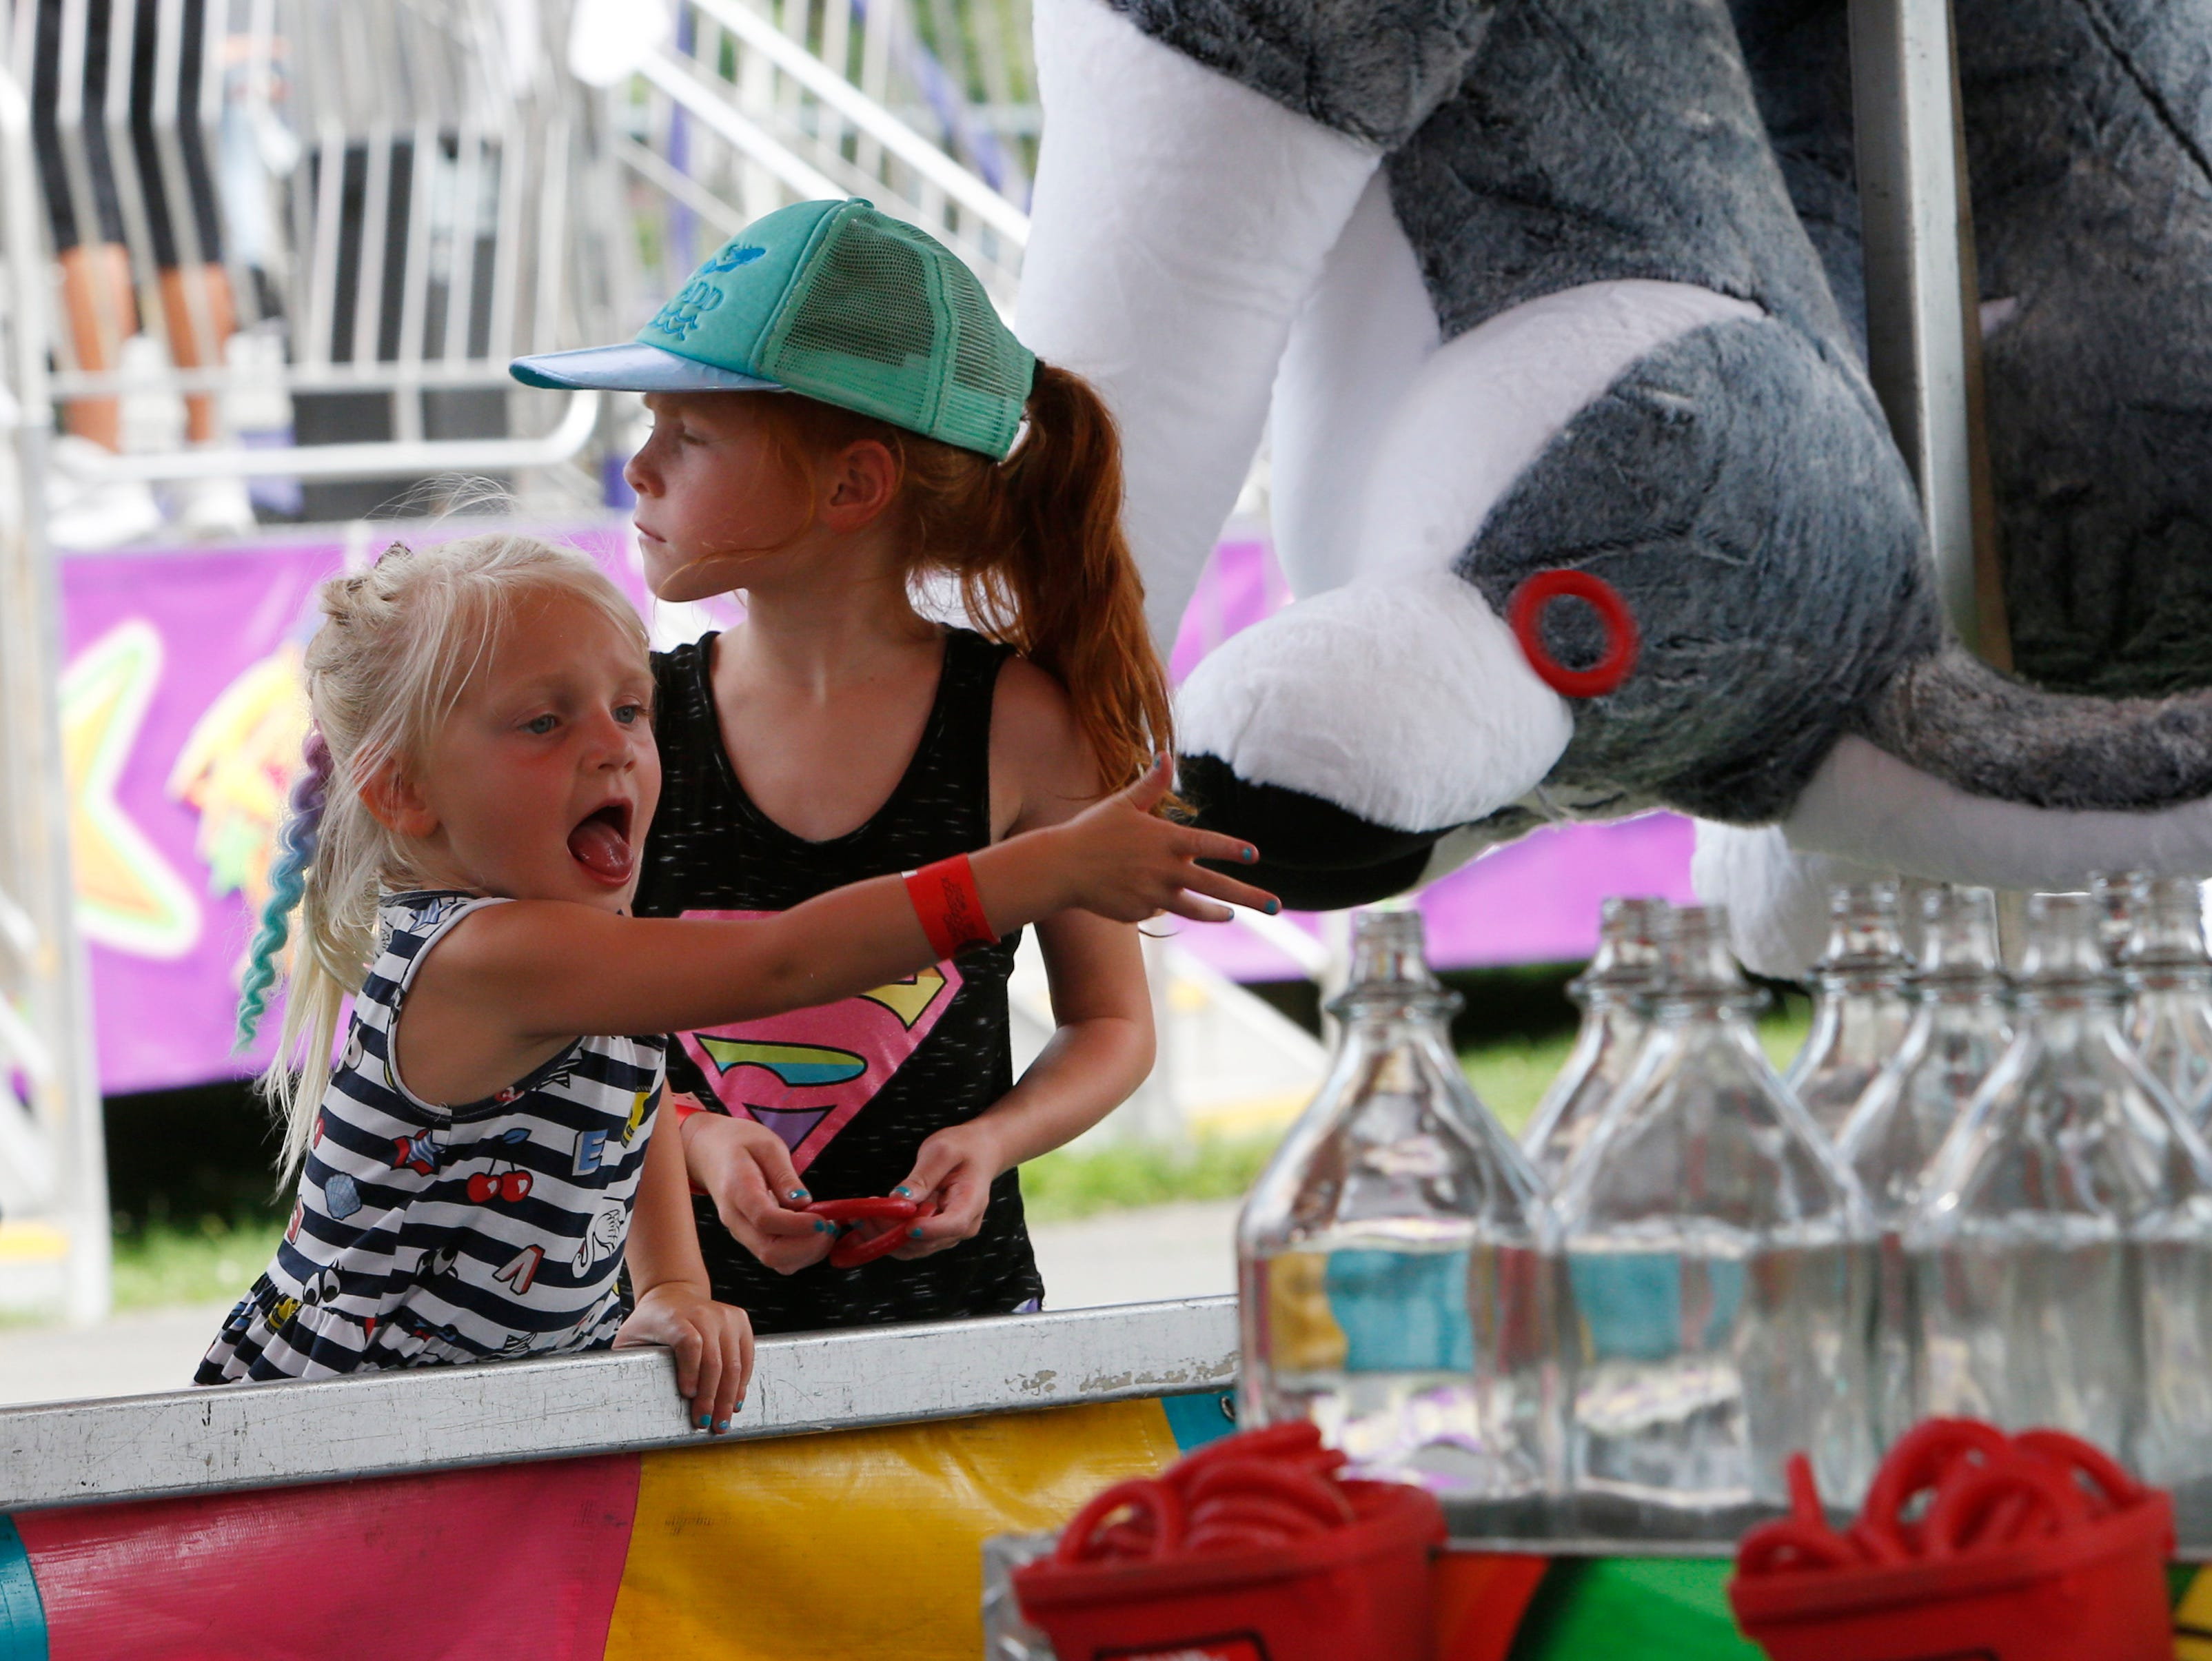 From left, Harper and Addison Fabiano of Kingston try their luck at the ring toss during the Ulster County Fair in New Paltz on July 31, 2018.